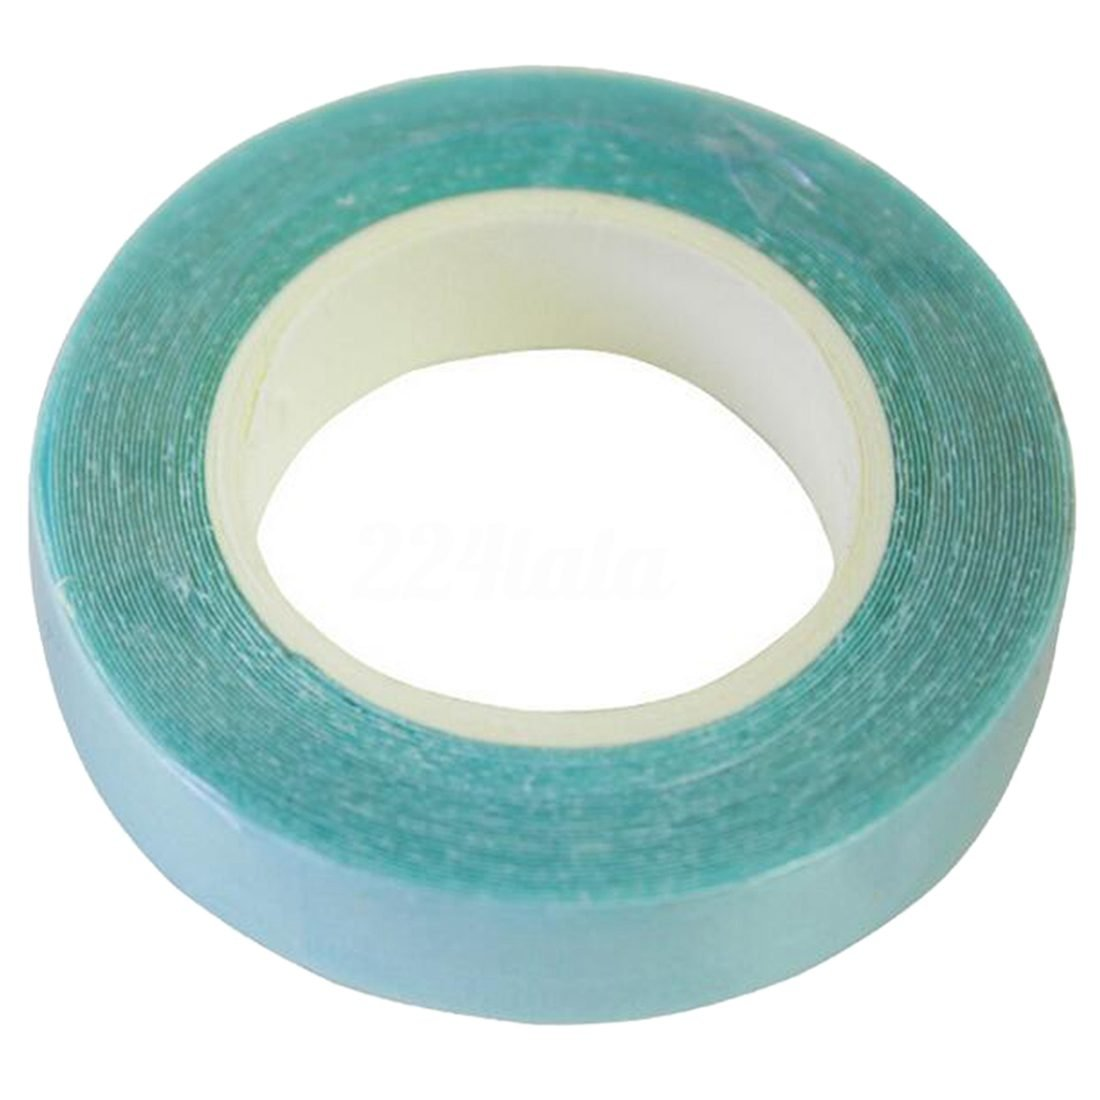 SODIAL Strong Double-sided Adhesive Tape for All Tape Hair Extensions,3 METER 1 Roll